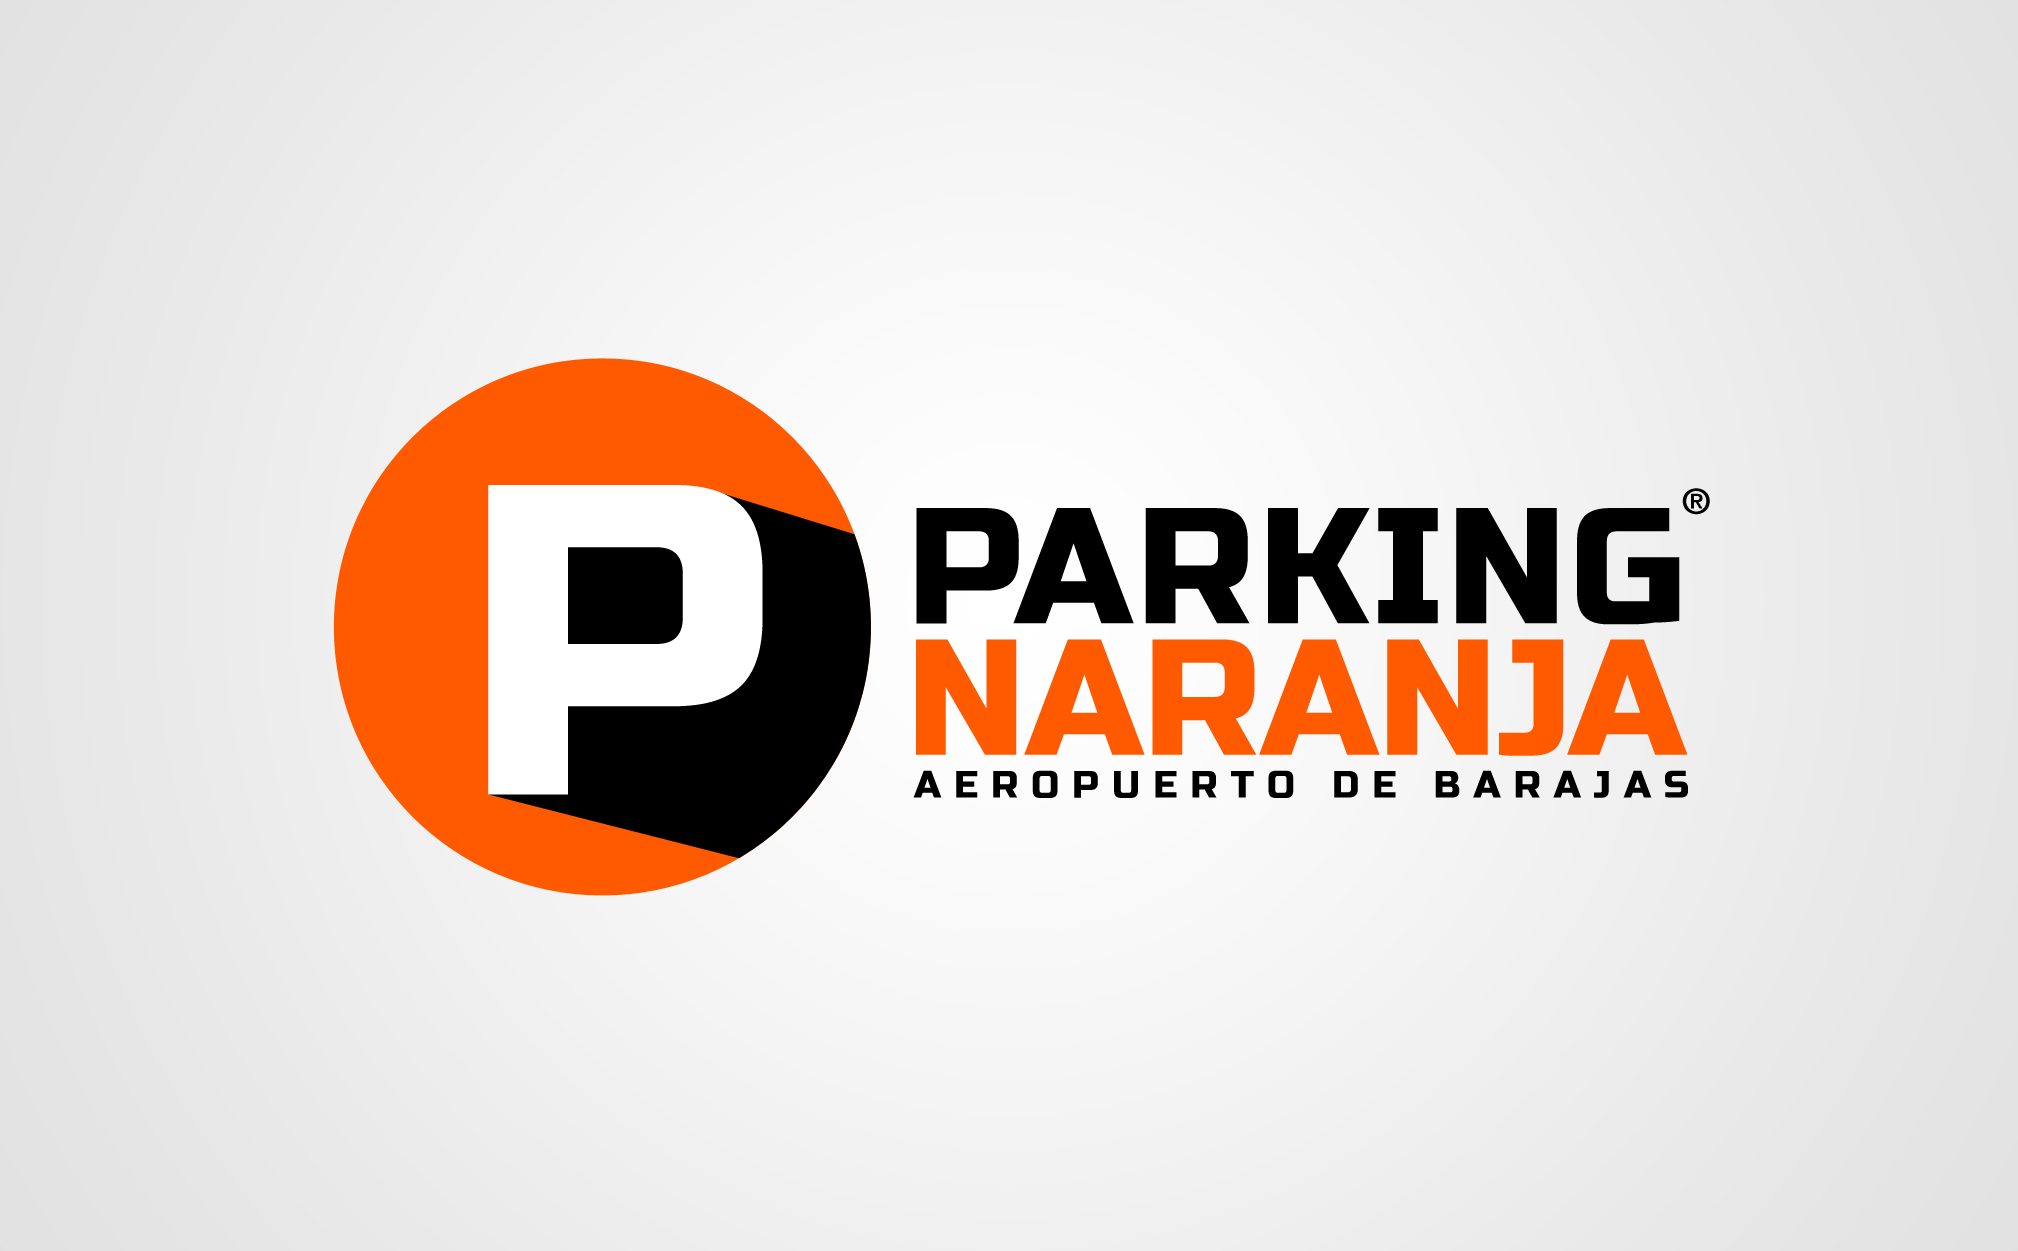 Parking Naranja (Paga online)